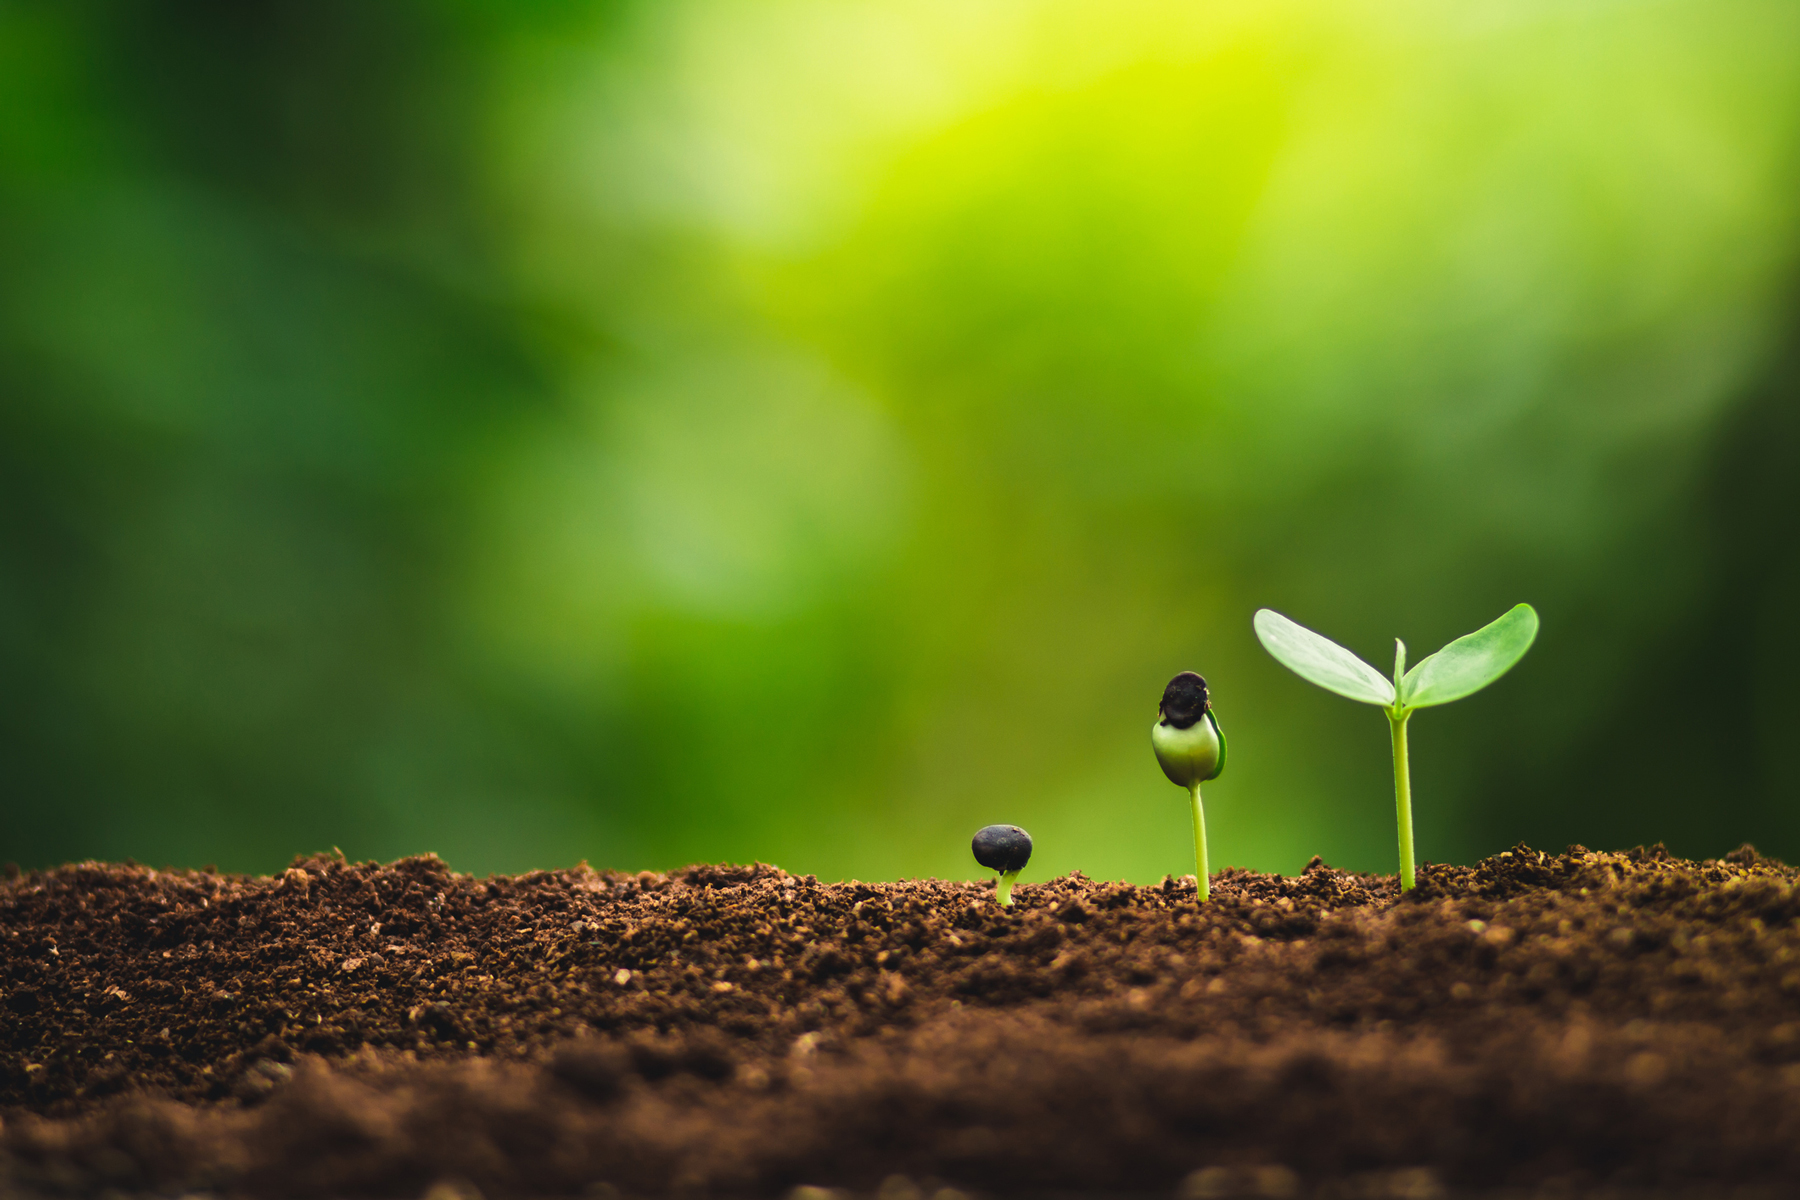 Sustainable gardening tips - sprouts growing in dirt